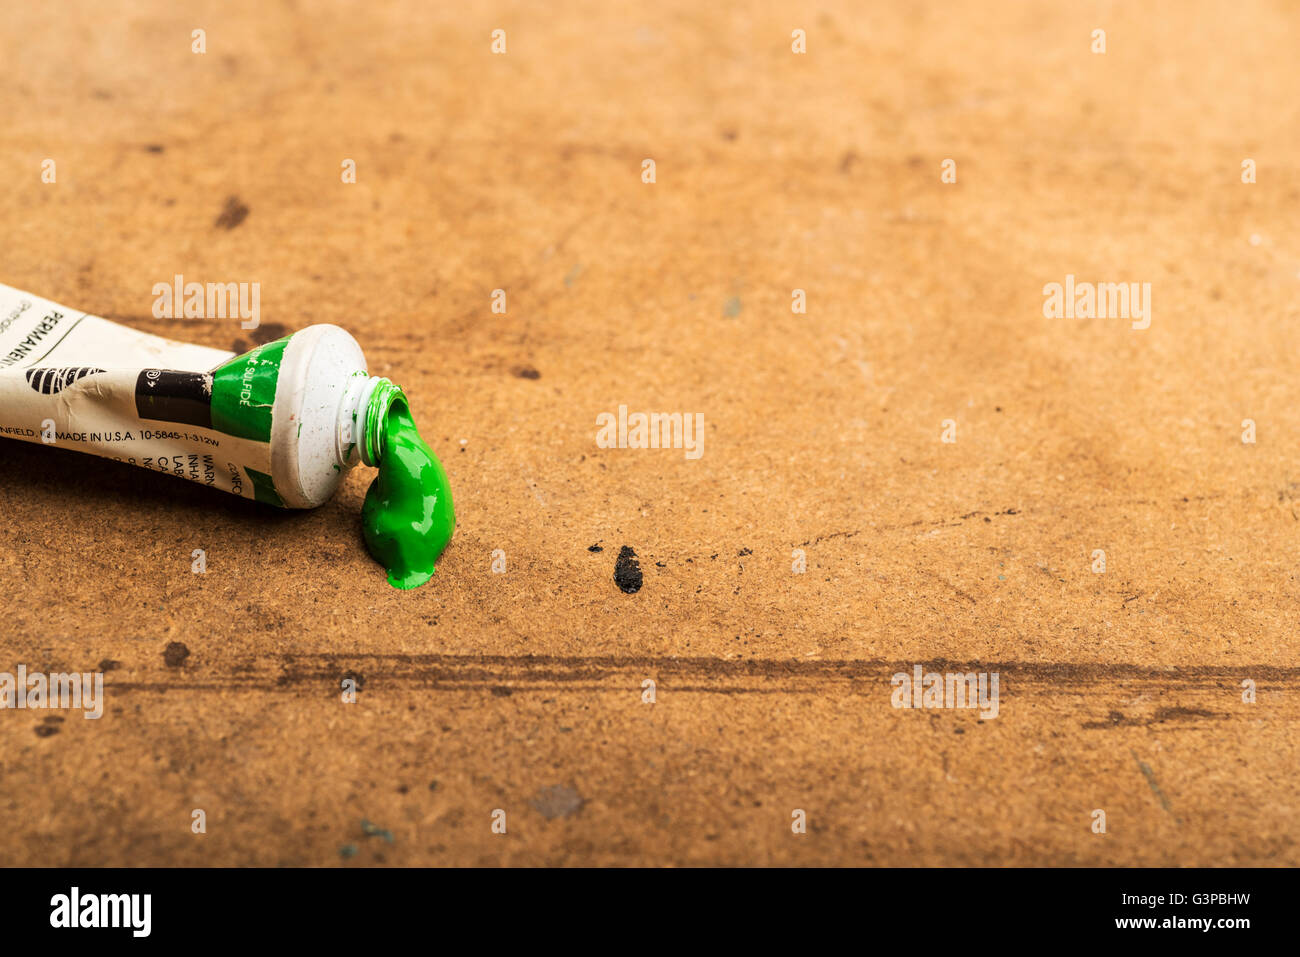 Tube of green acrylic paint on an artist's table. - Stock Image